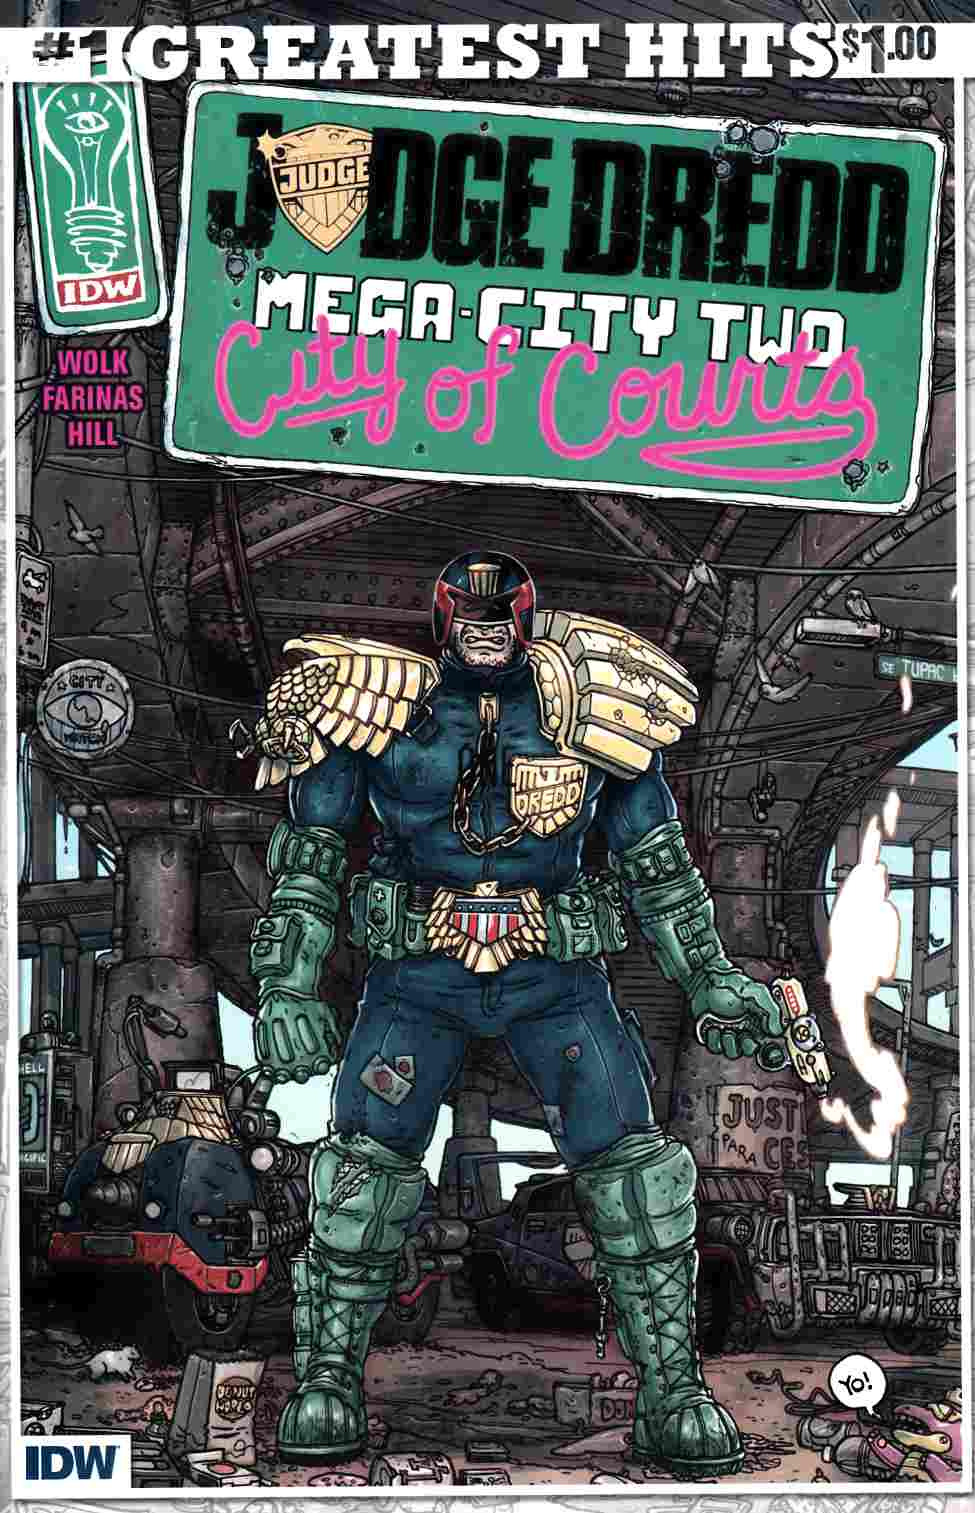 Judge Dredd Mega-City Two #1 IDW Greatest Hits [IDW Comic]